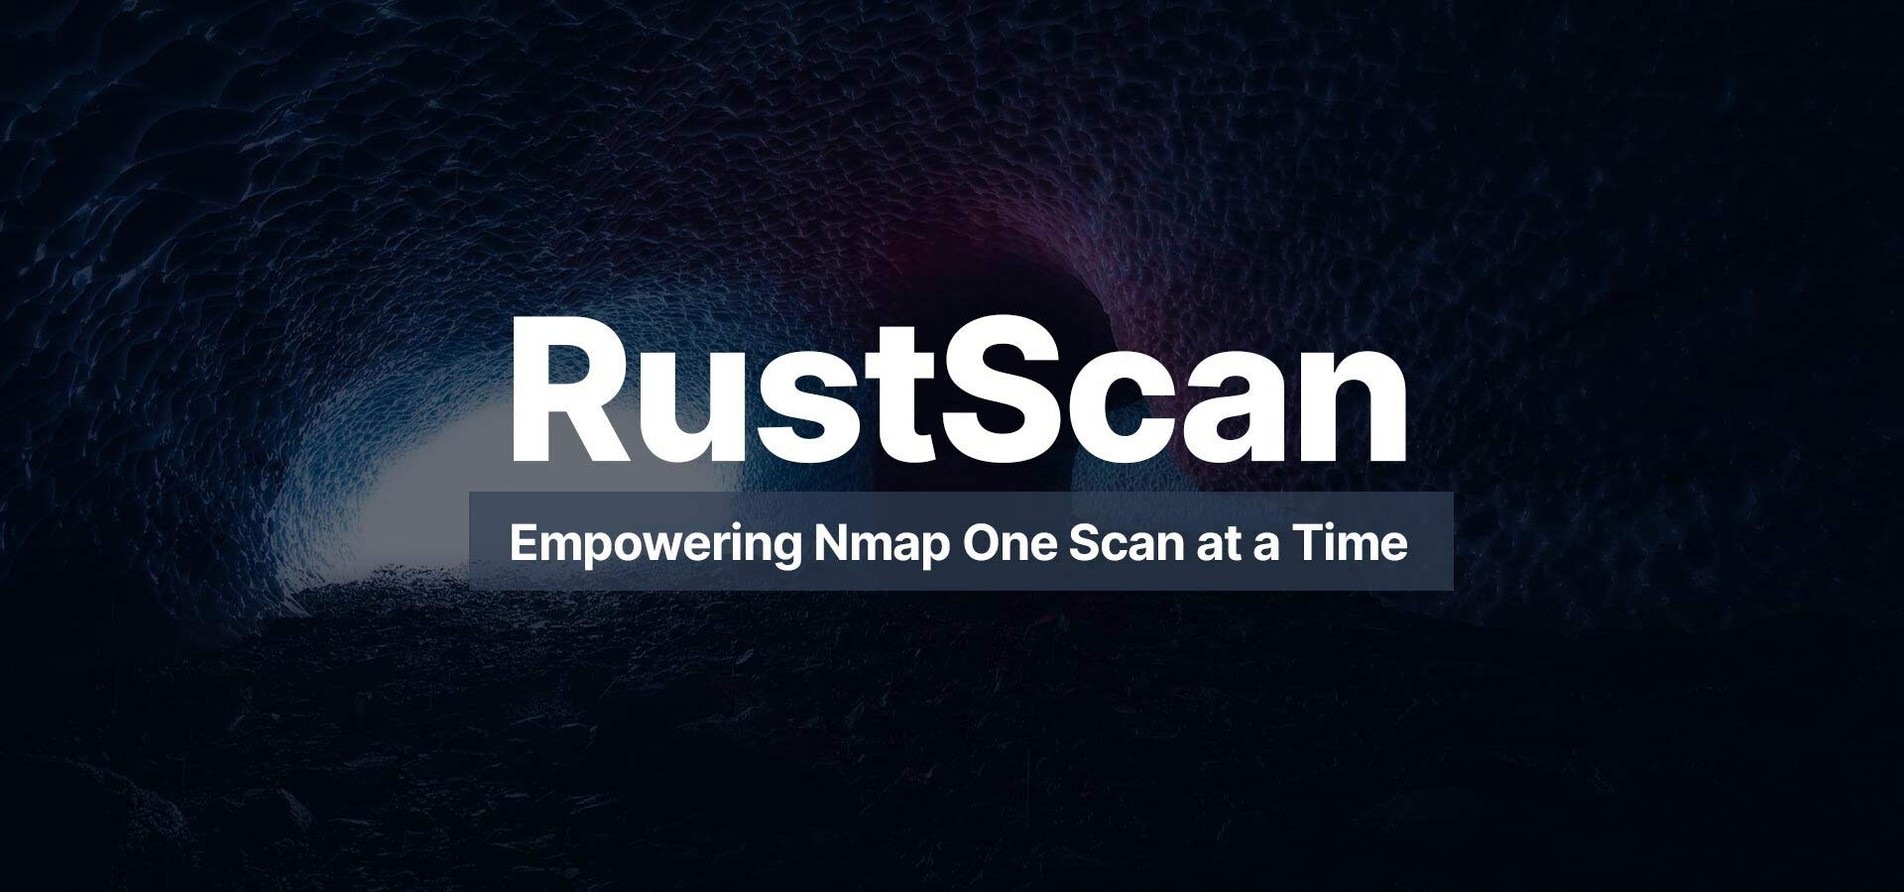 RustScan: Empowering Nmap One Scan at a Time.